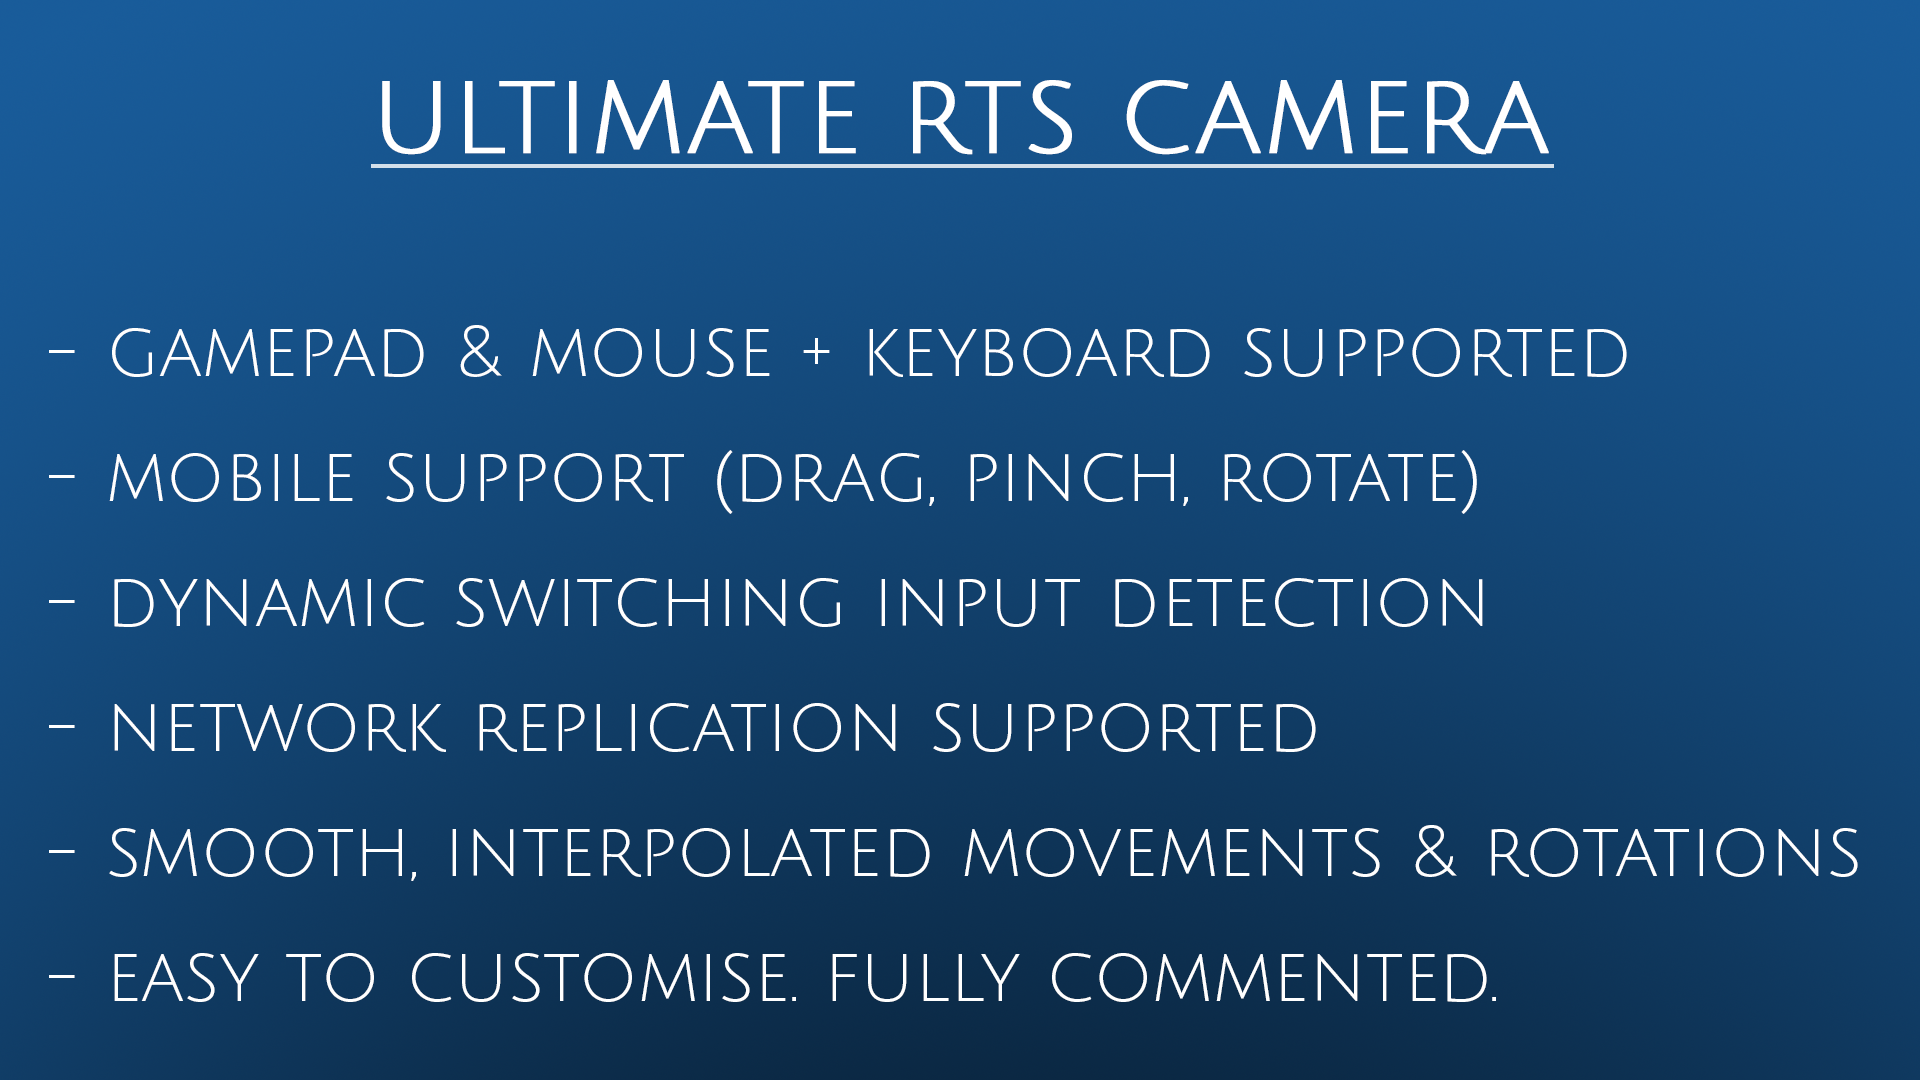 Ultimate RTS Camera by Aperture9 in Blueprints - UE4 Marketplace